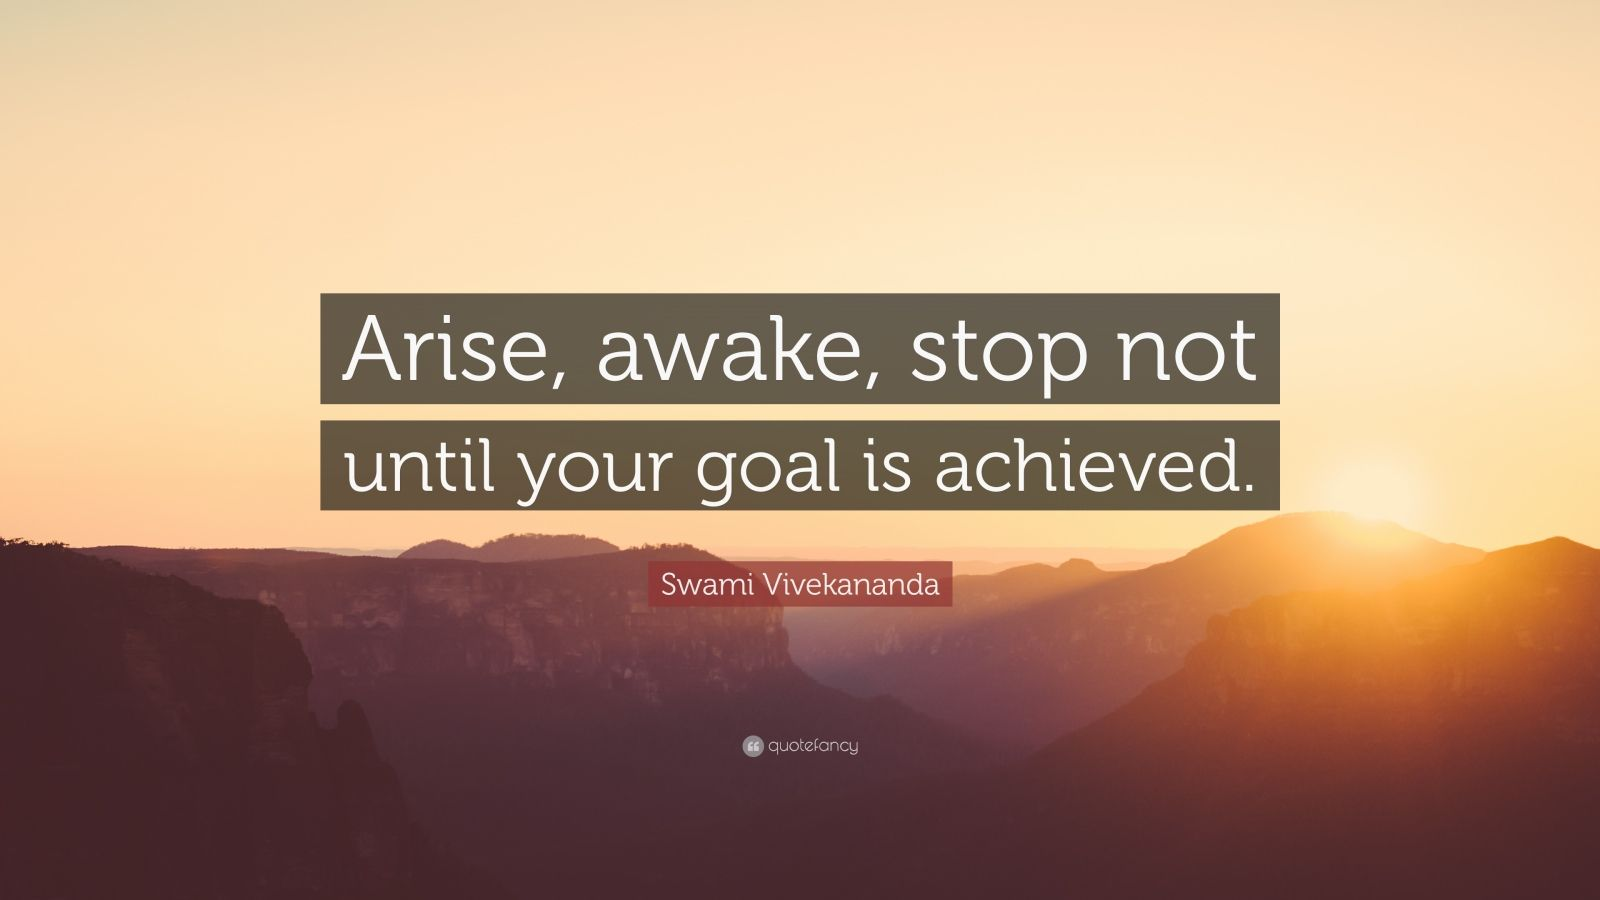 Hard Work Quotes Wallpapers Hd Swami Vivekananda Quotes 52 Wallpapers Quotefancy